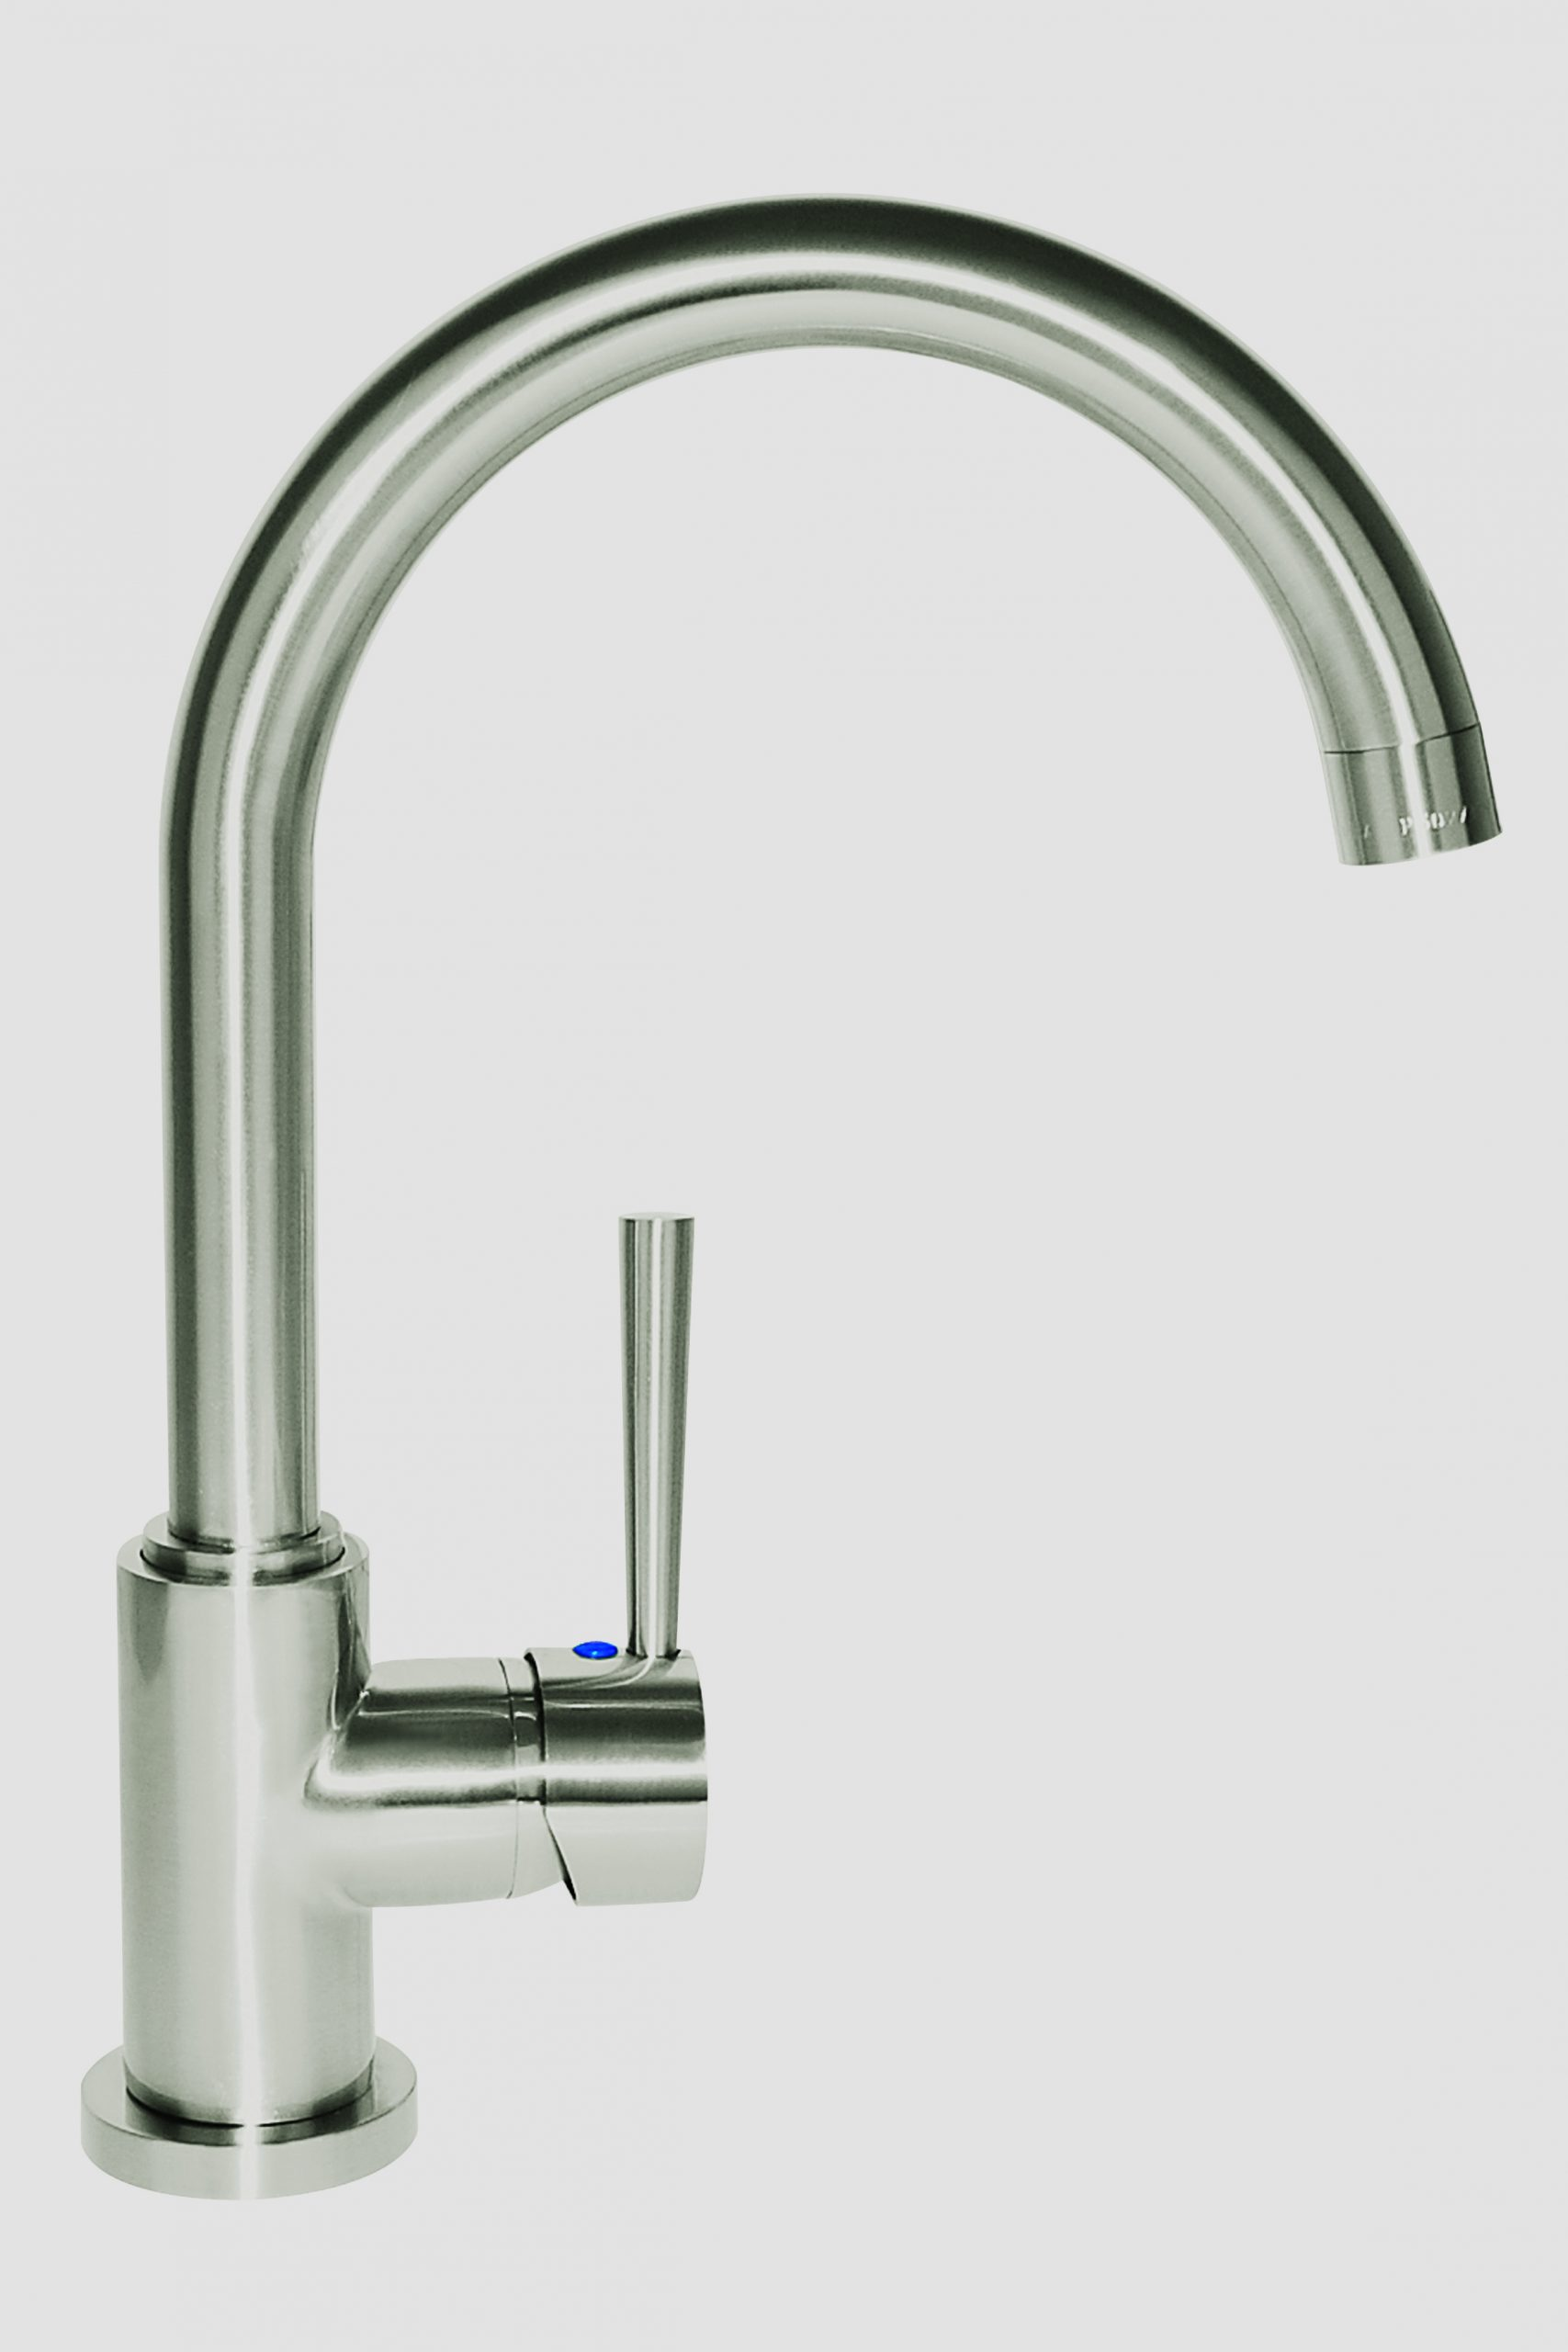 Full Size of Grohe Niederdruck Armatur Küche Brause Niederdruck Armatur Küche Grohe Ikea Niederdruck Armatur Küche Niederdruck Armatur Küche Hornbach Küche Niederdruck Armatur Küche